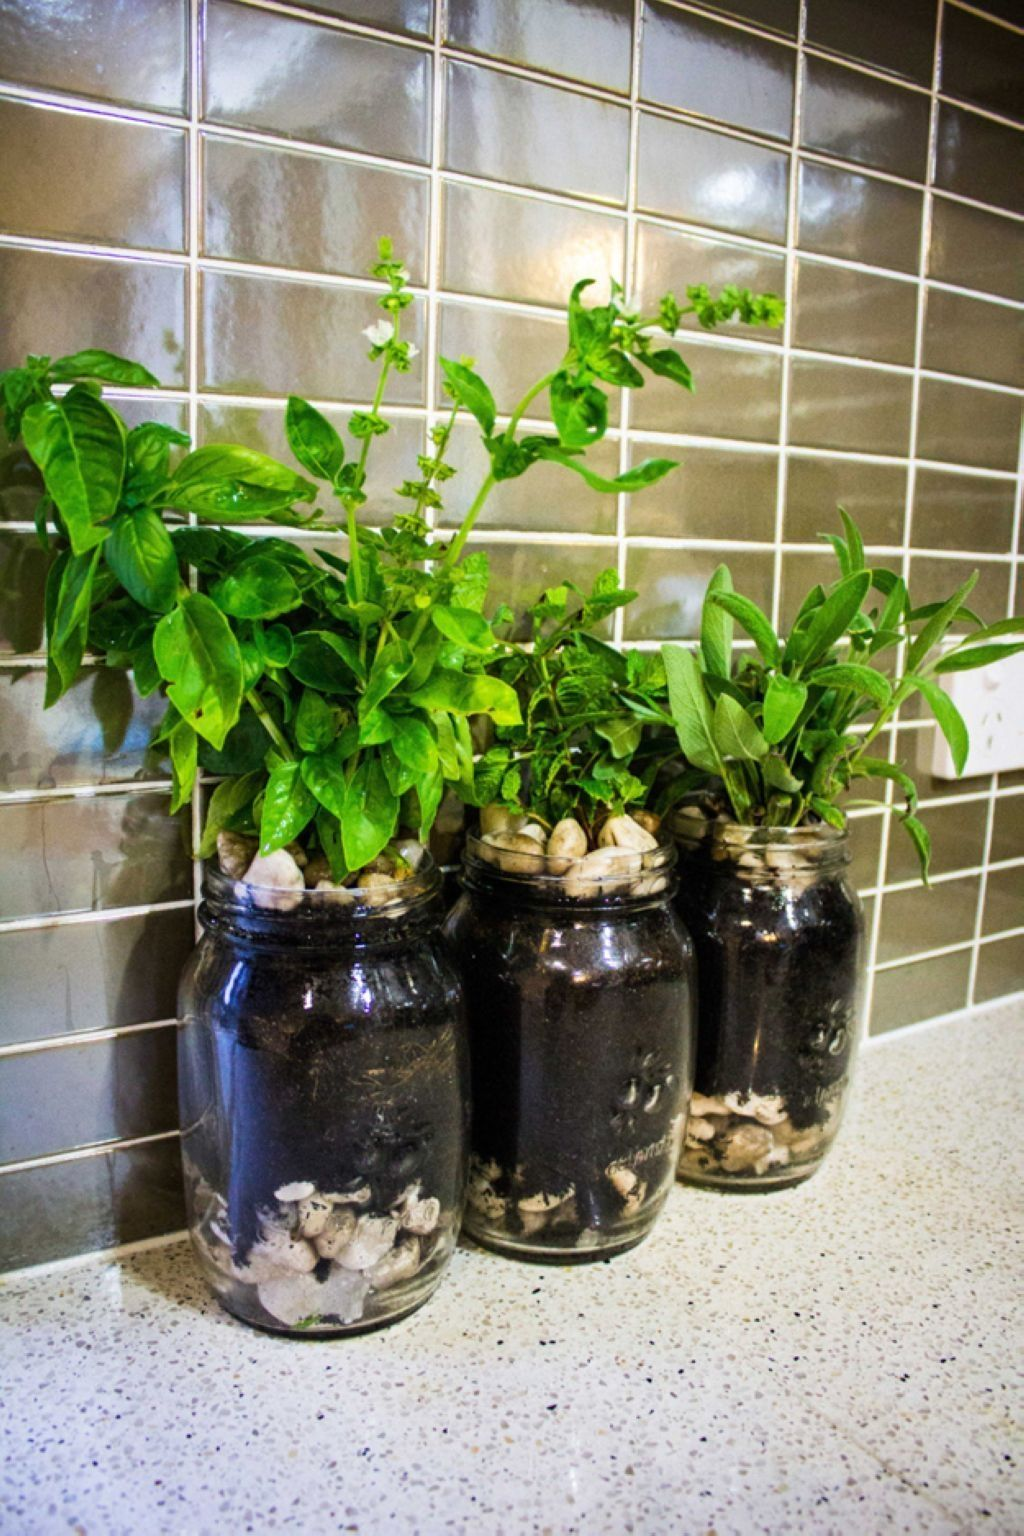 39 DIY Indoor Garden Ideas for Small Spaces Decoration | Small ...